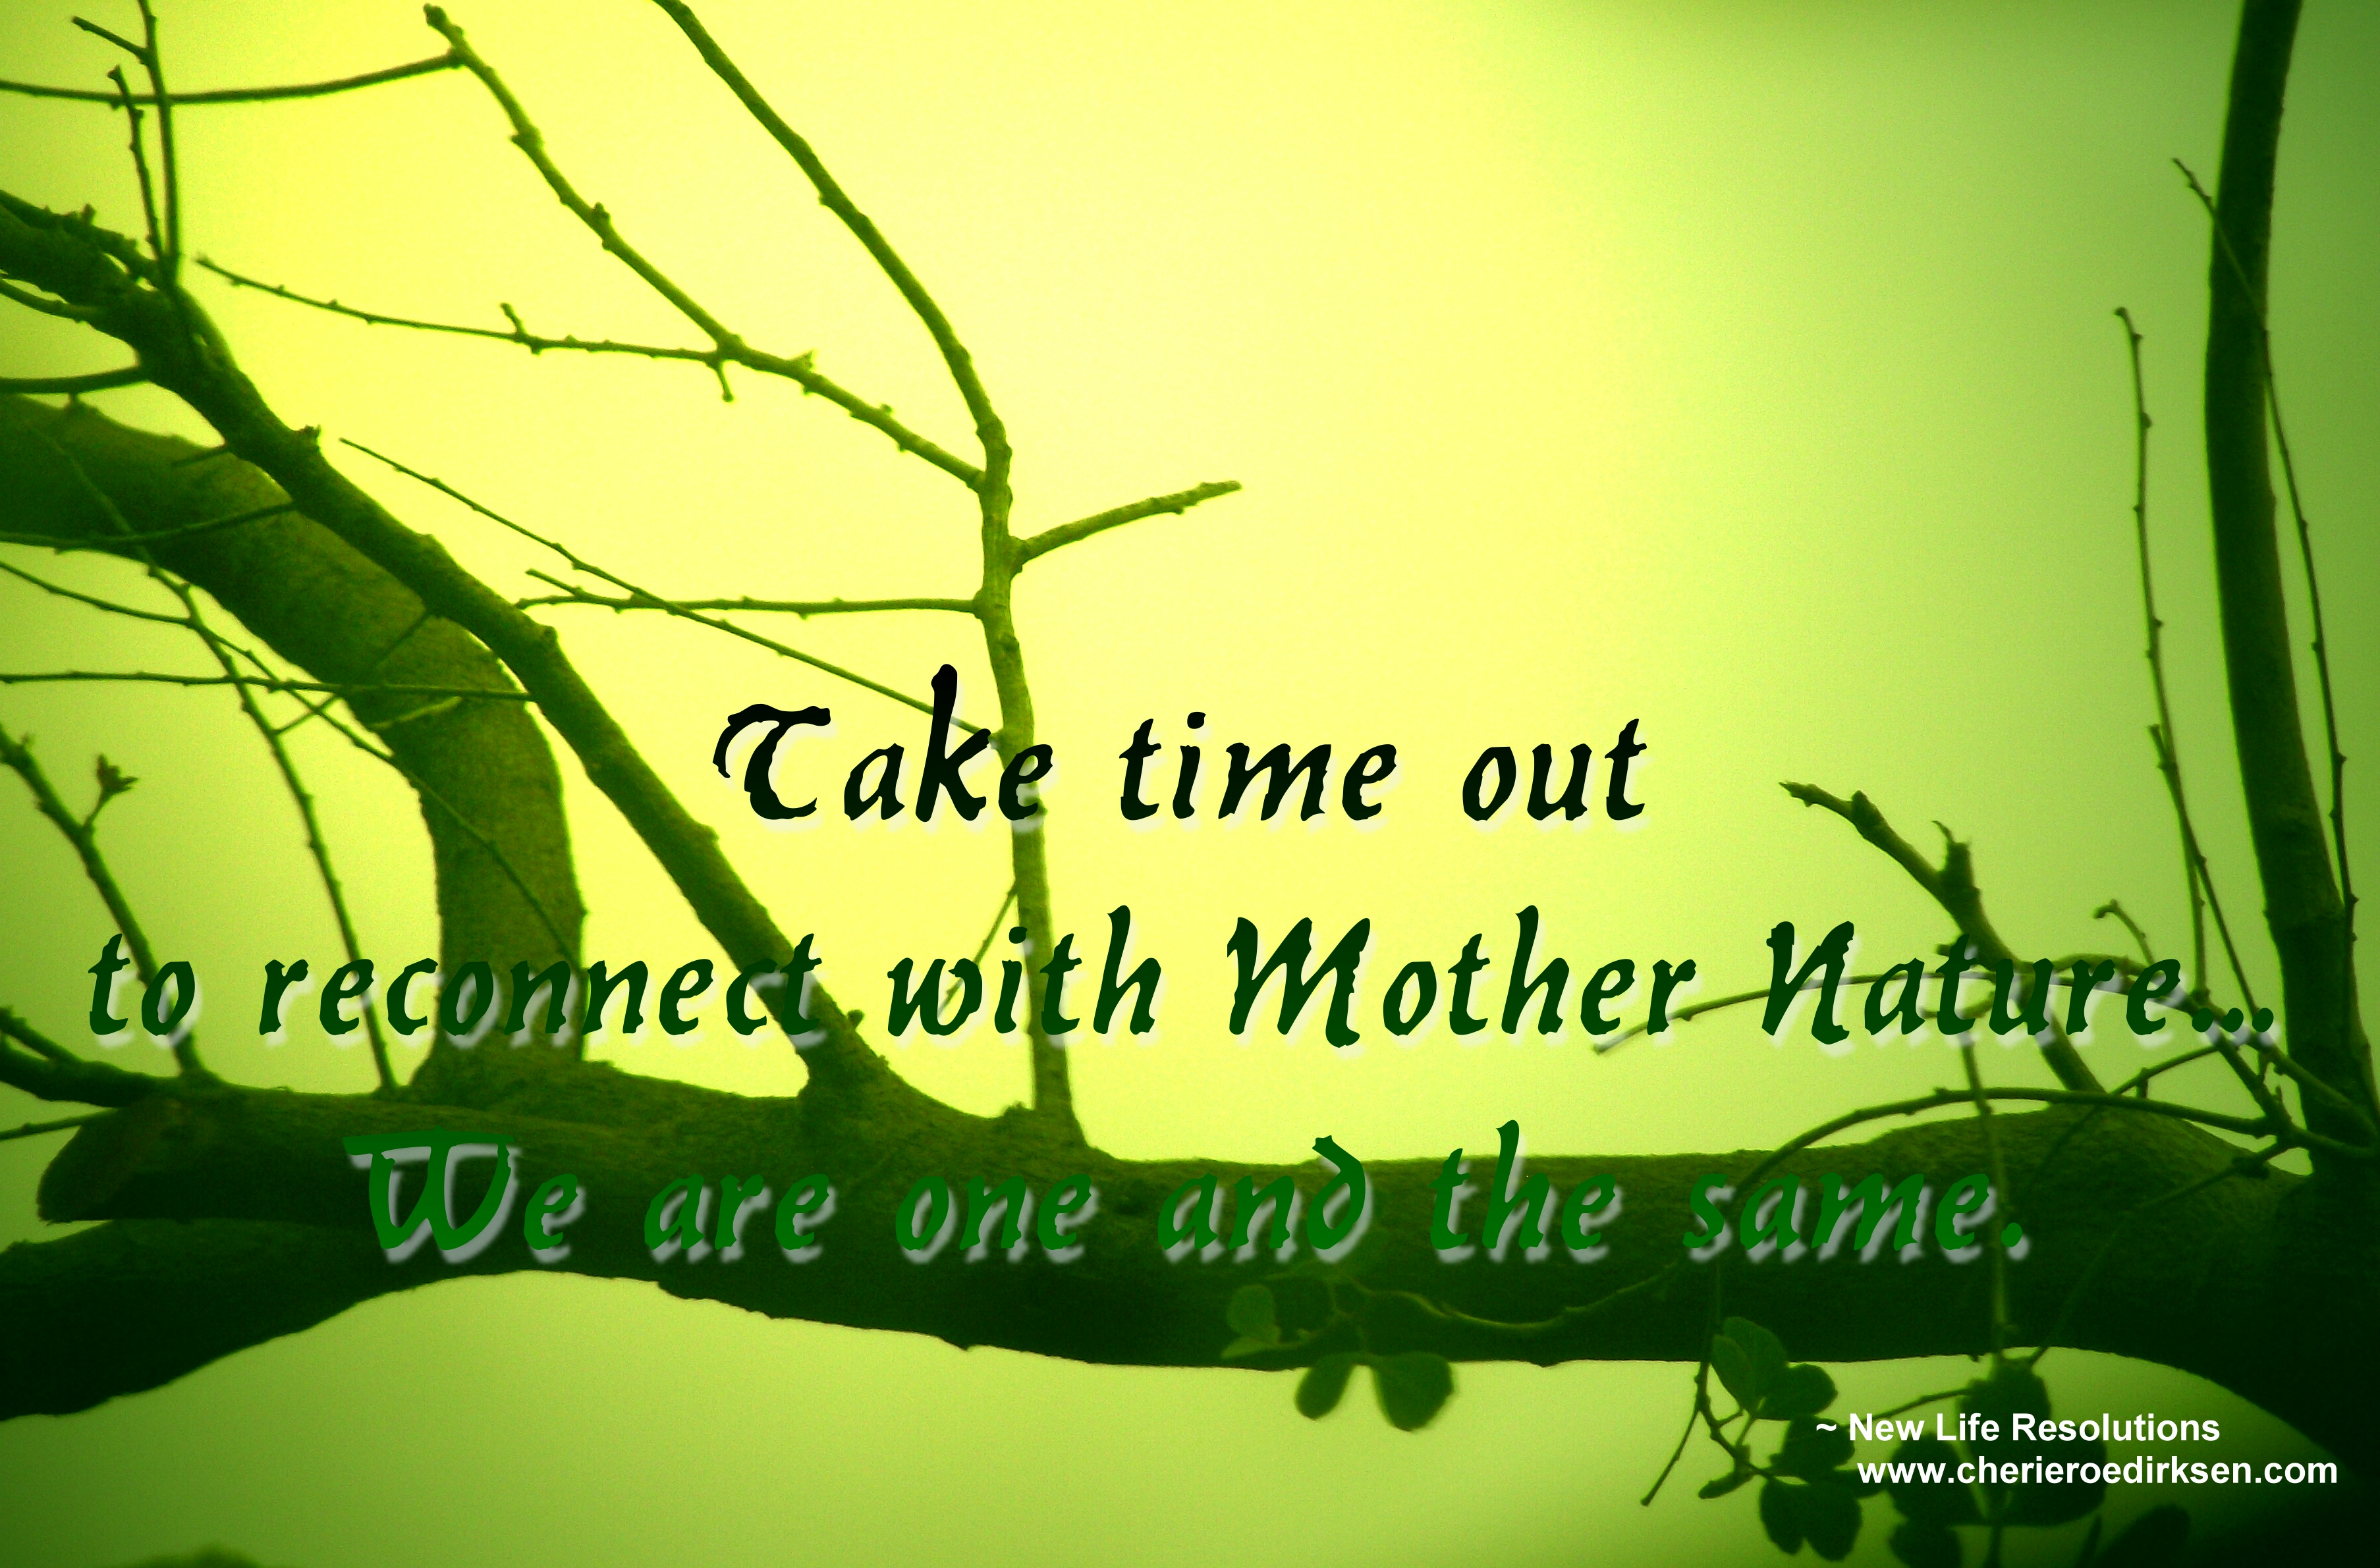 mother nature sayings wallpaper - photo #18